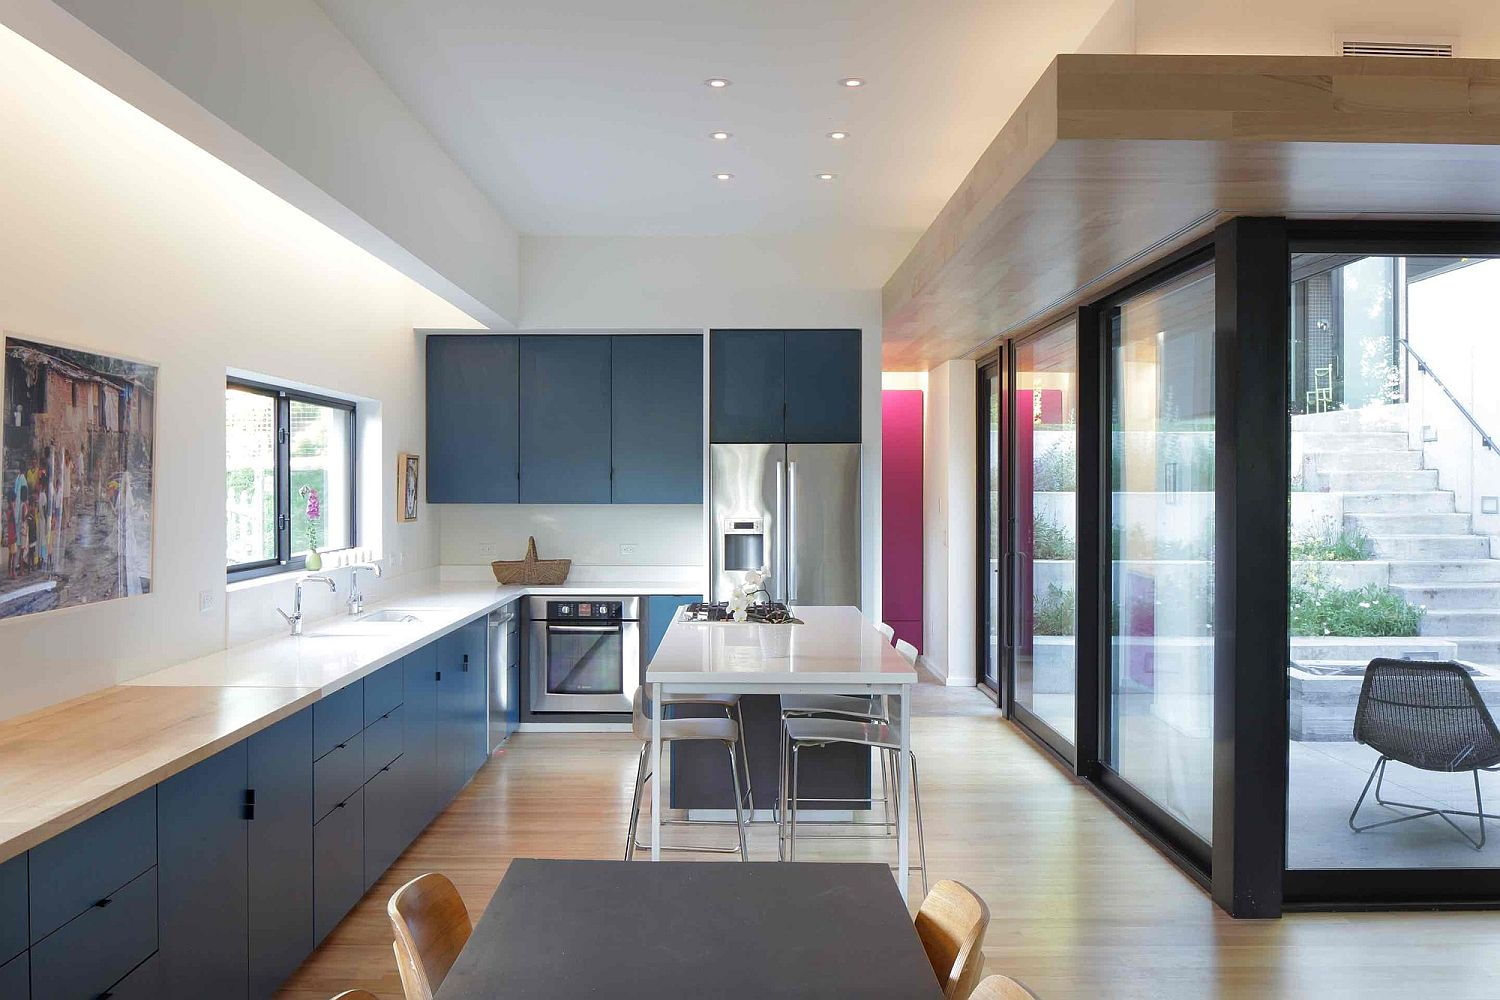 Kitchen in white and blue on the lower level